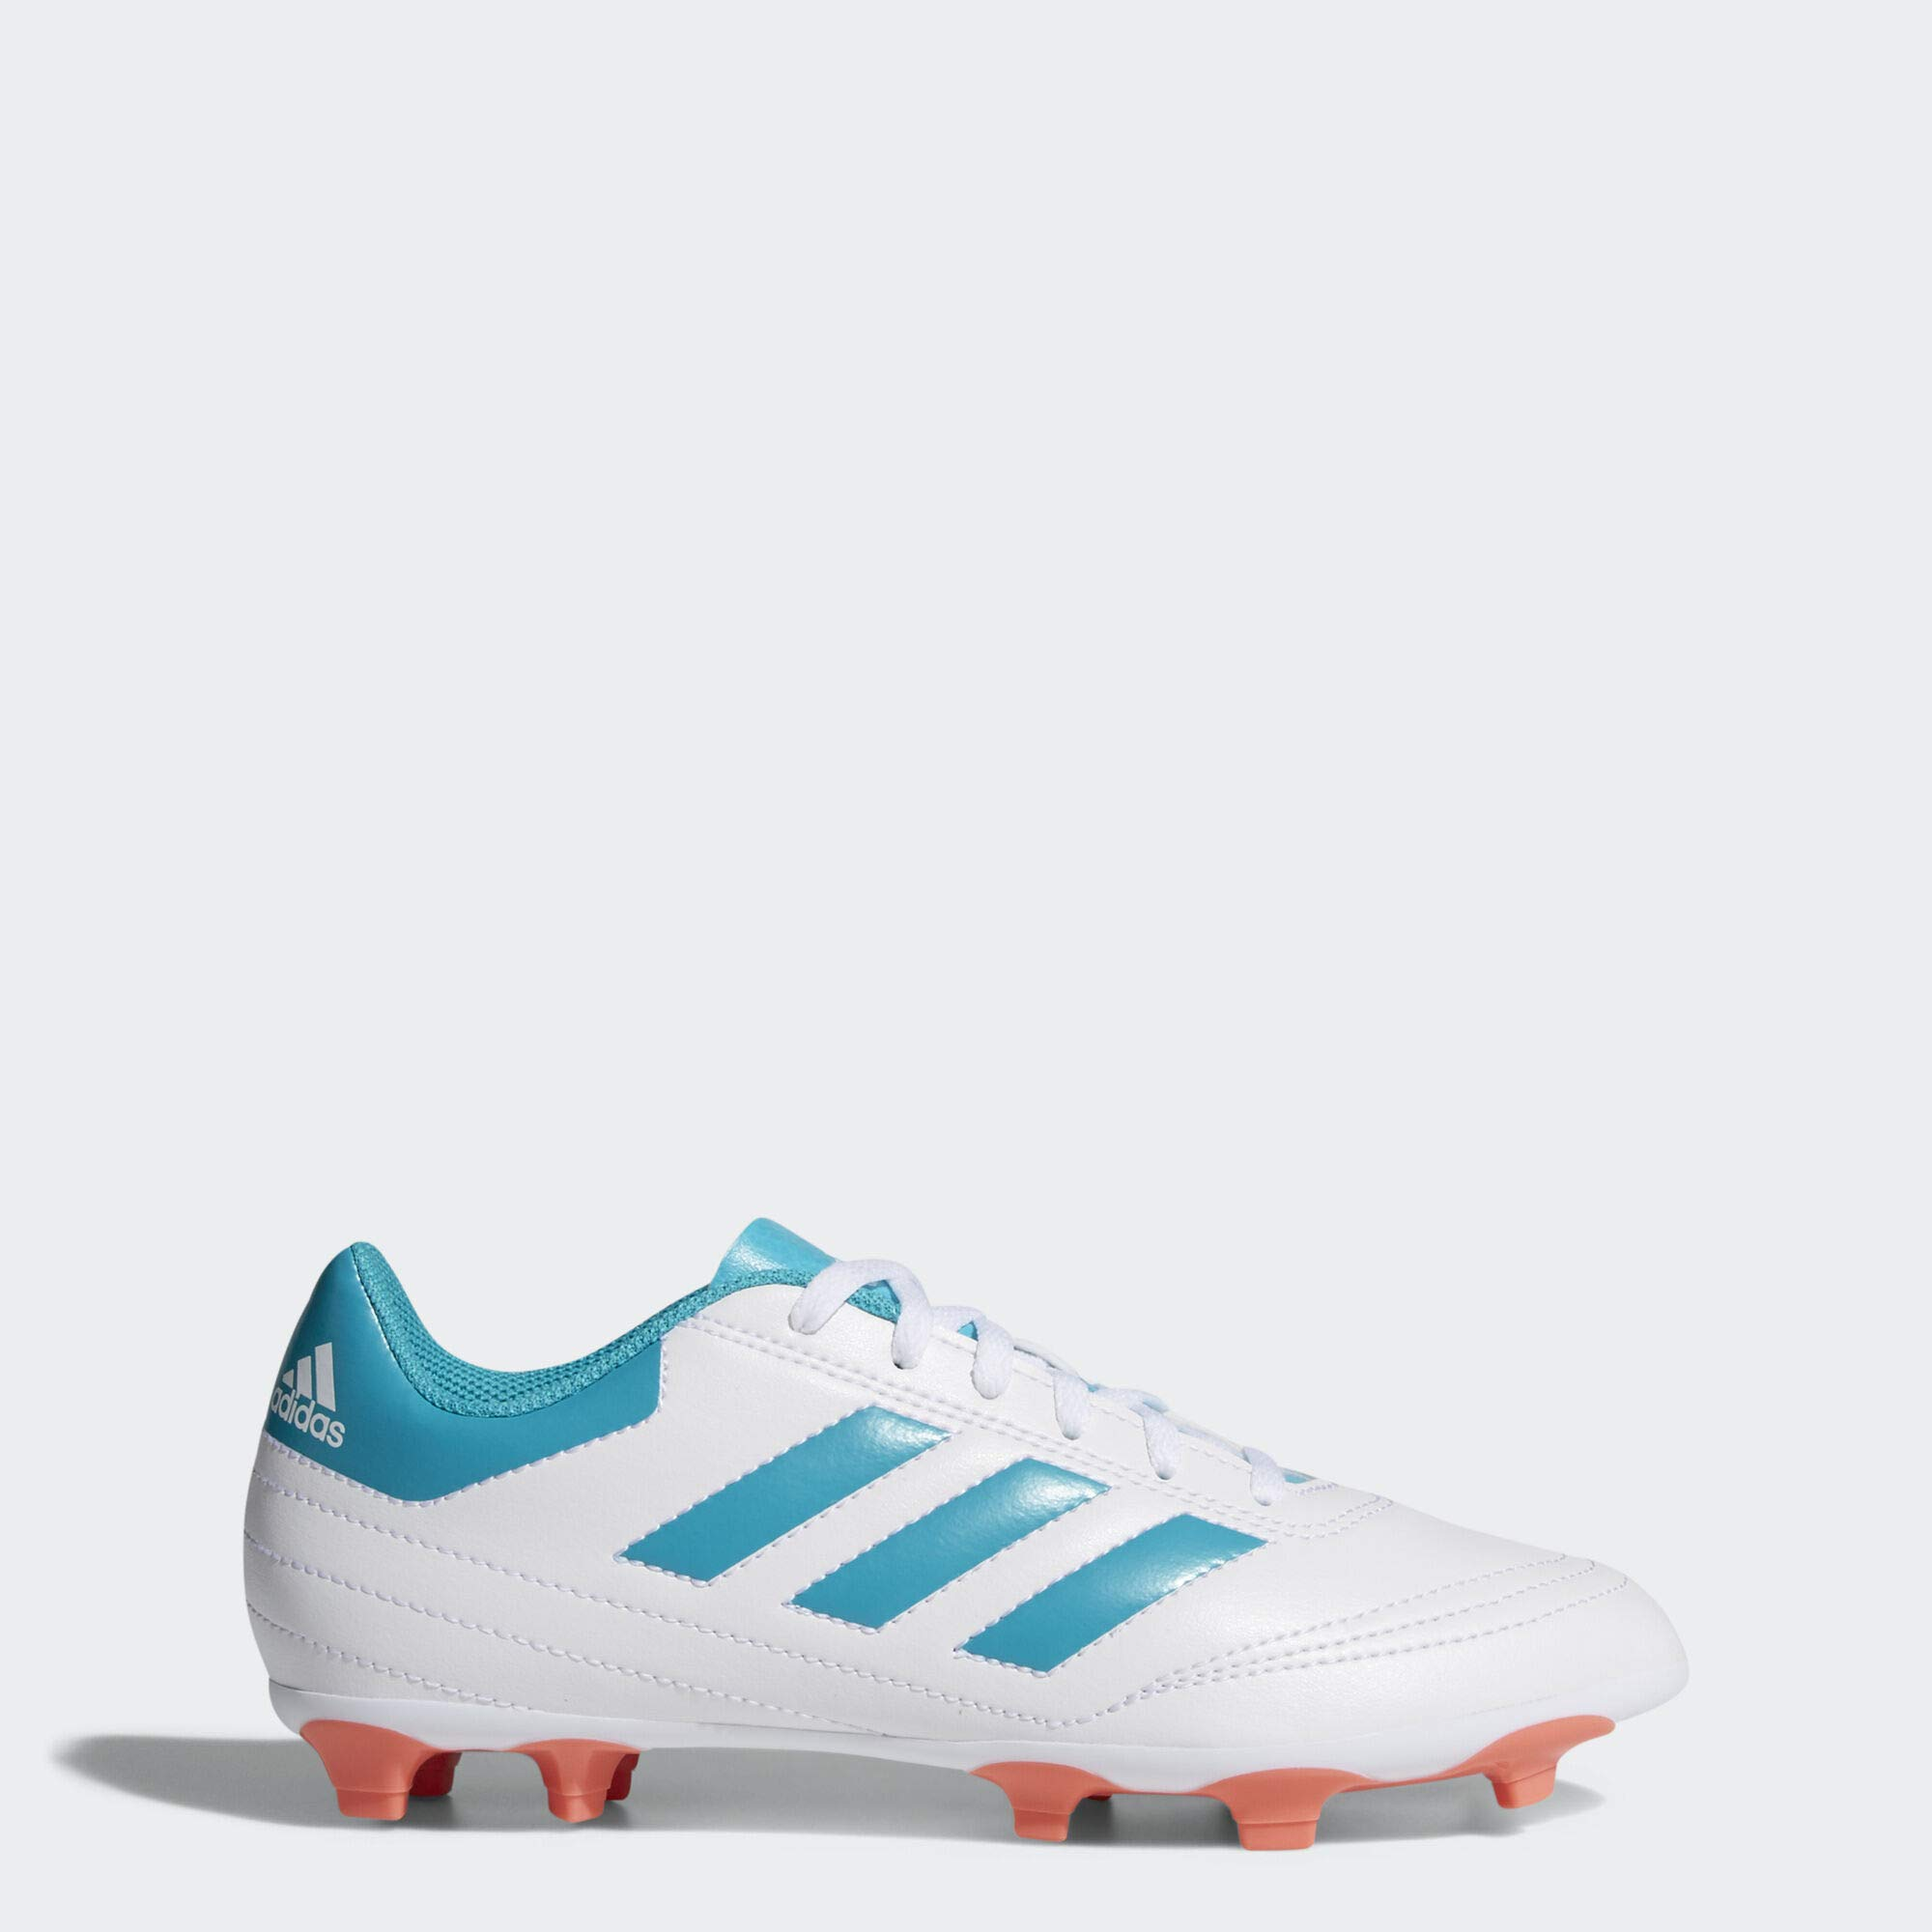 adidas Women's Goletto VI FG W Soccer Shoe, white/energy blue/easy coral, 8.5 M US by adidas